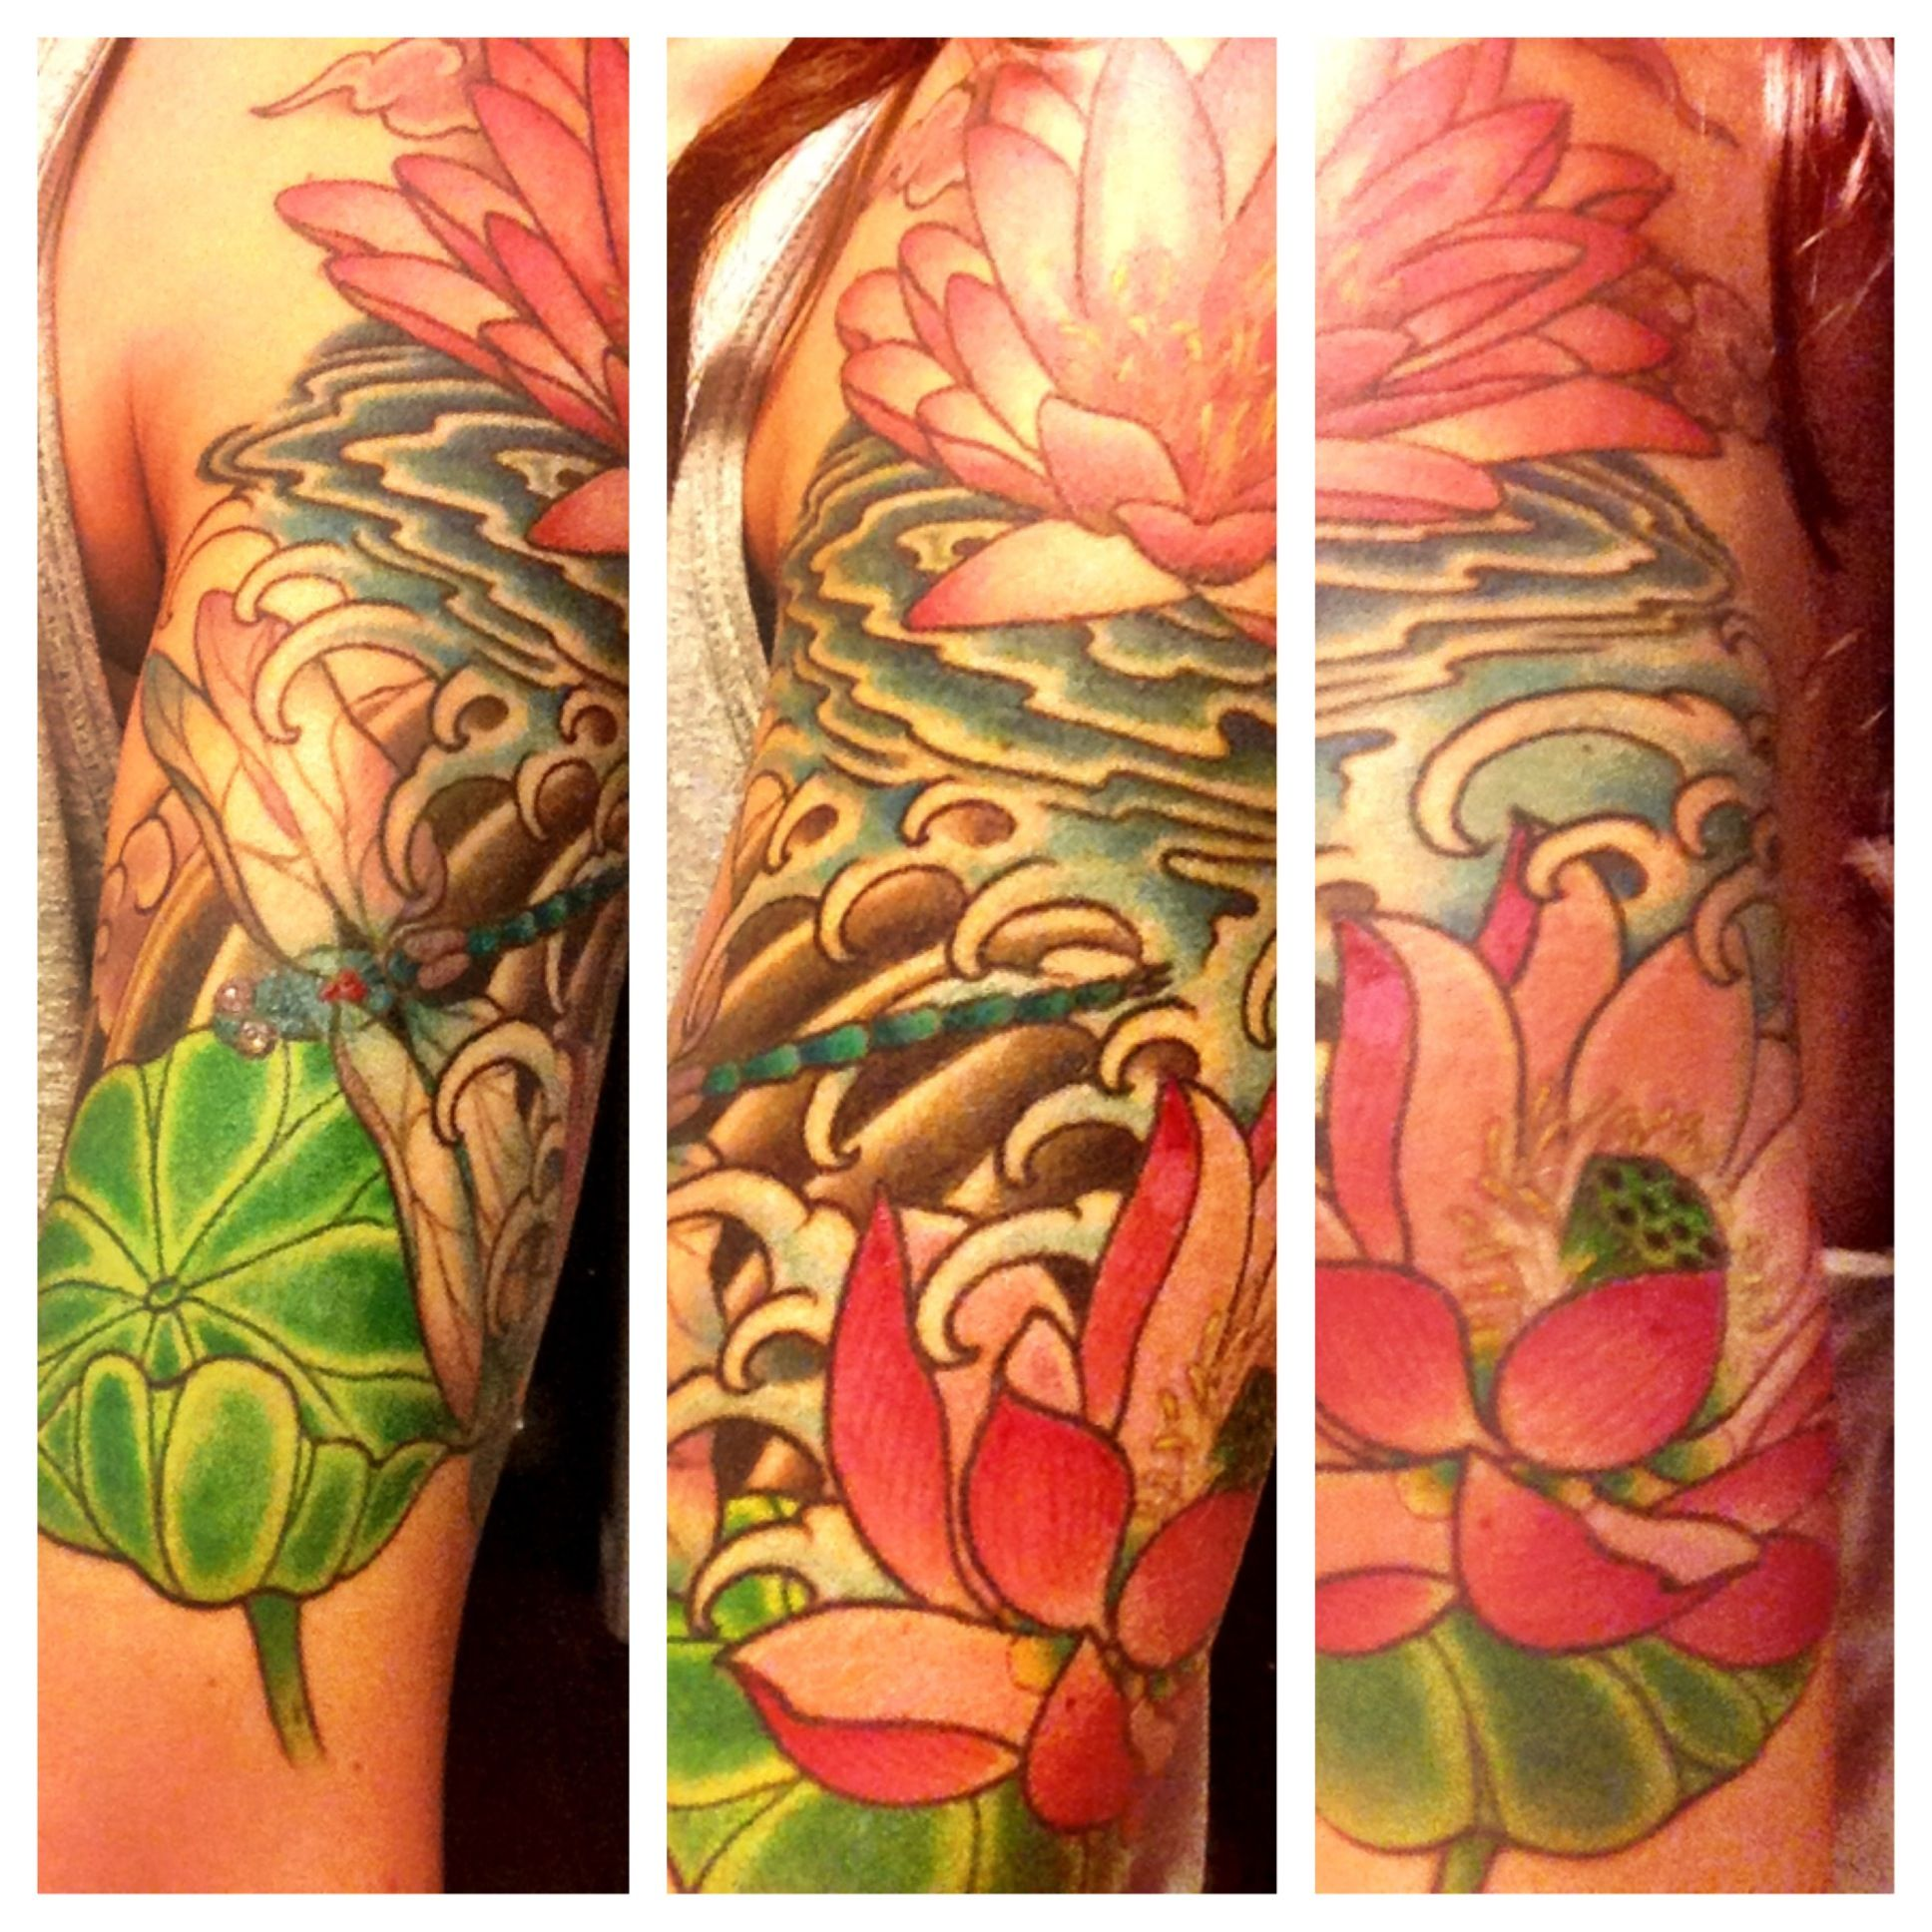 Lotus Flower Tattoo With Dragonfly: Half Sleeve By Dave Hartman. Waterlily, Lotus Flower